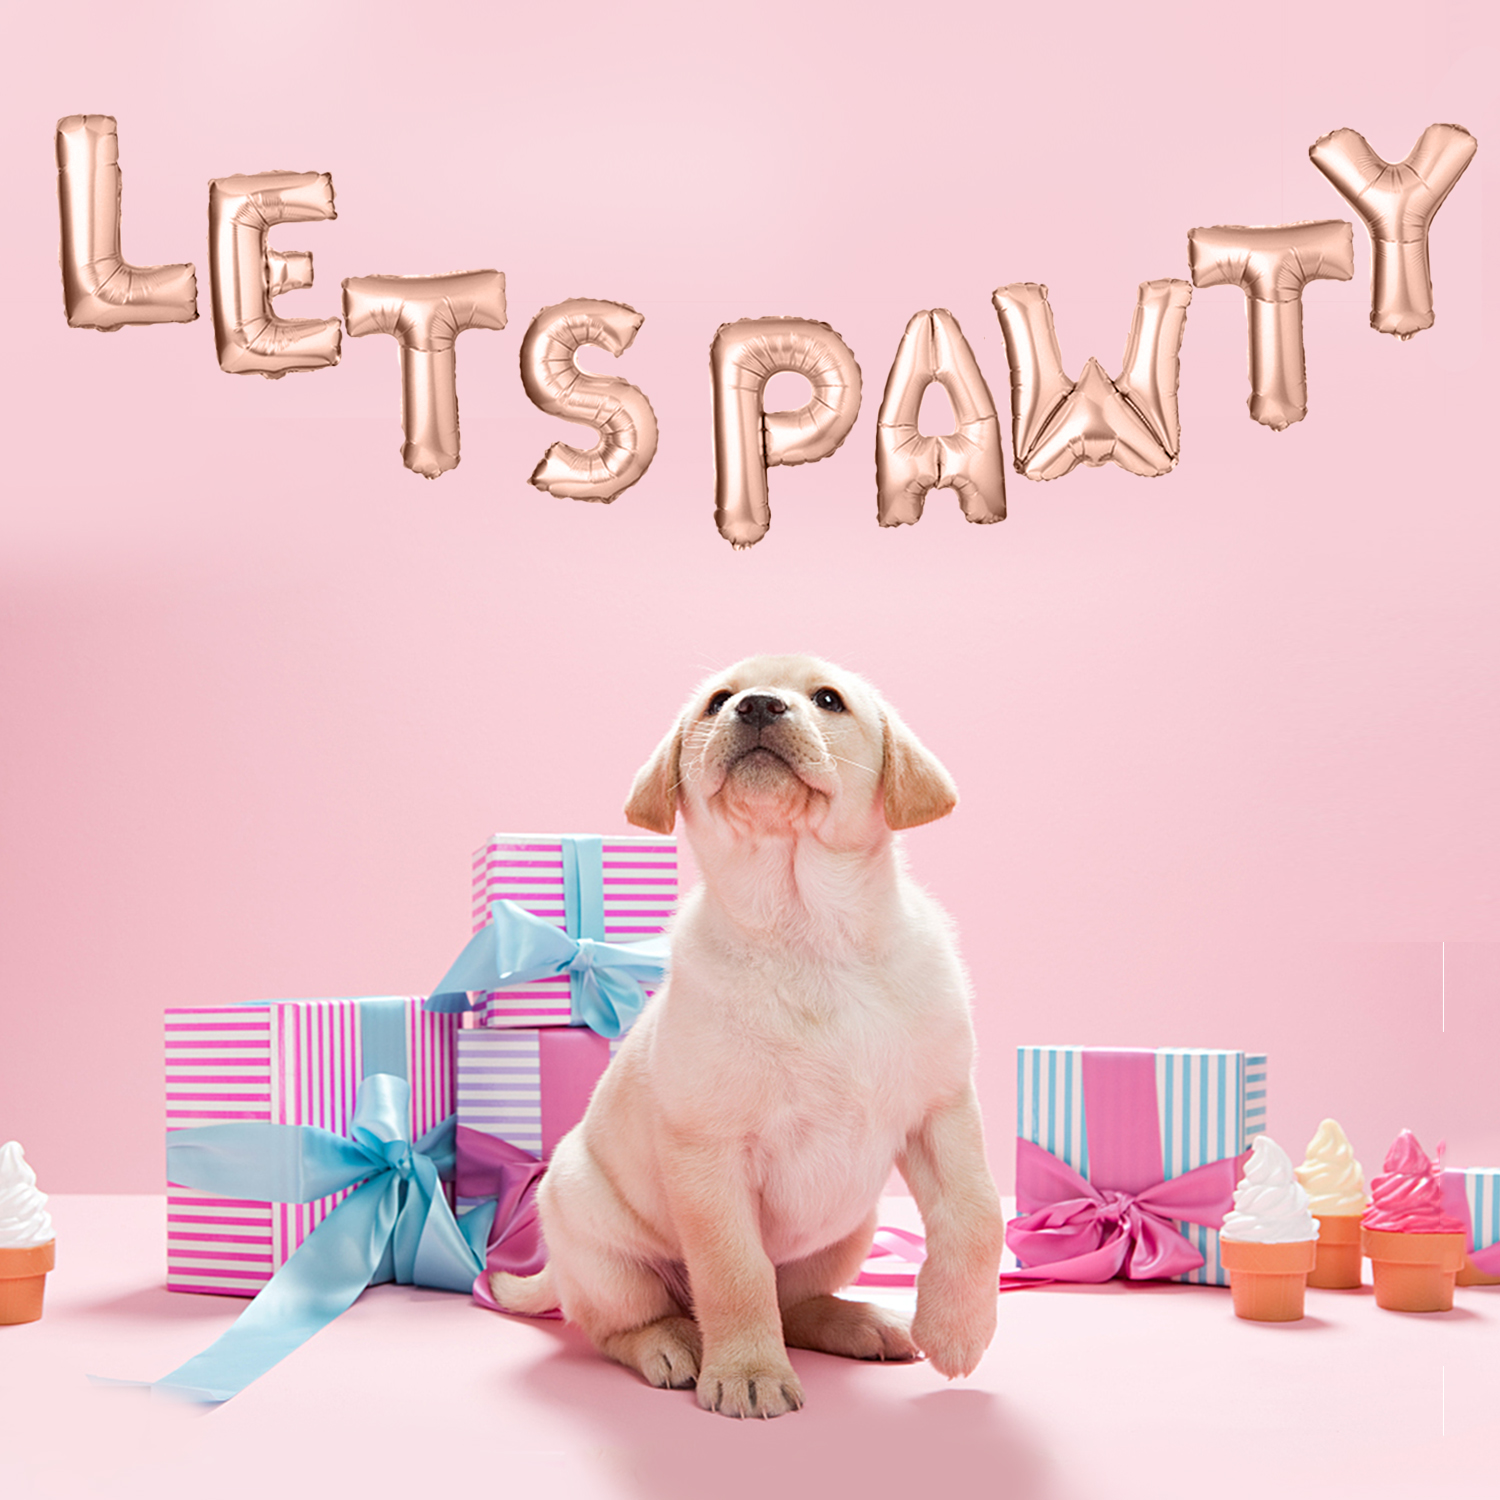 9PCS 16 39 39 Creative Pet Dog Birthday Party Decoration Foil Balloon Cute Letter Party Balloon Decor Balloon For Pet Birthday in Ballons amp Accessories from Home amp Garden